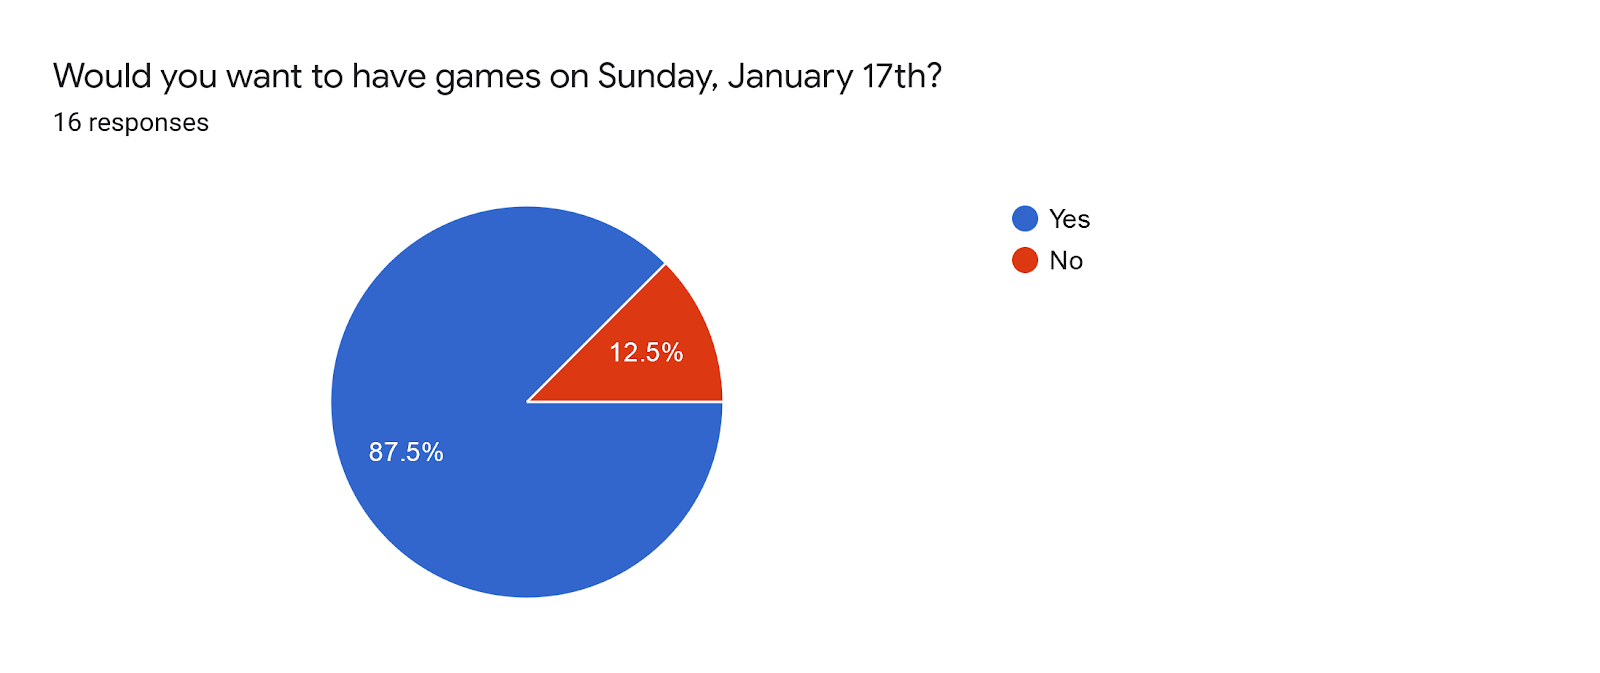 Forms response chart. Question title: Would you want to have games on Sunday, January 17th?. Number of responses: 16 responses.